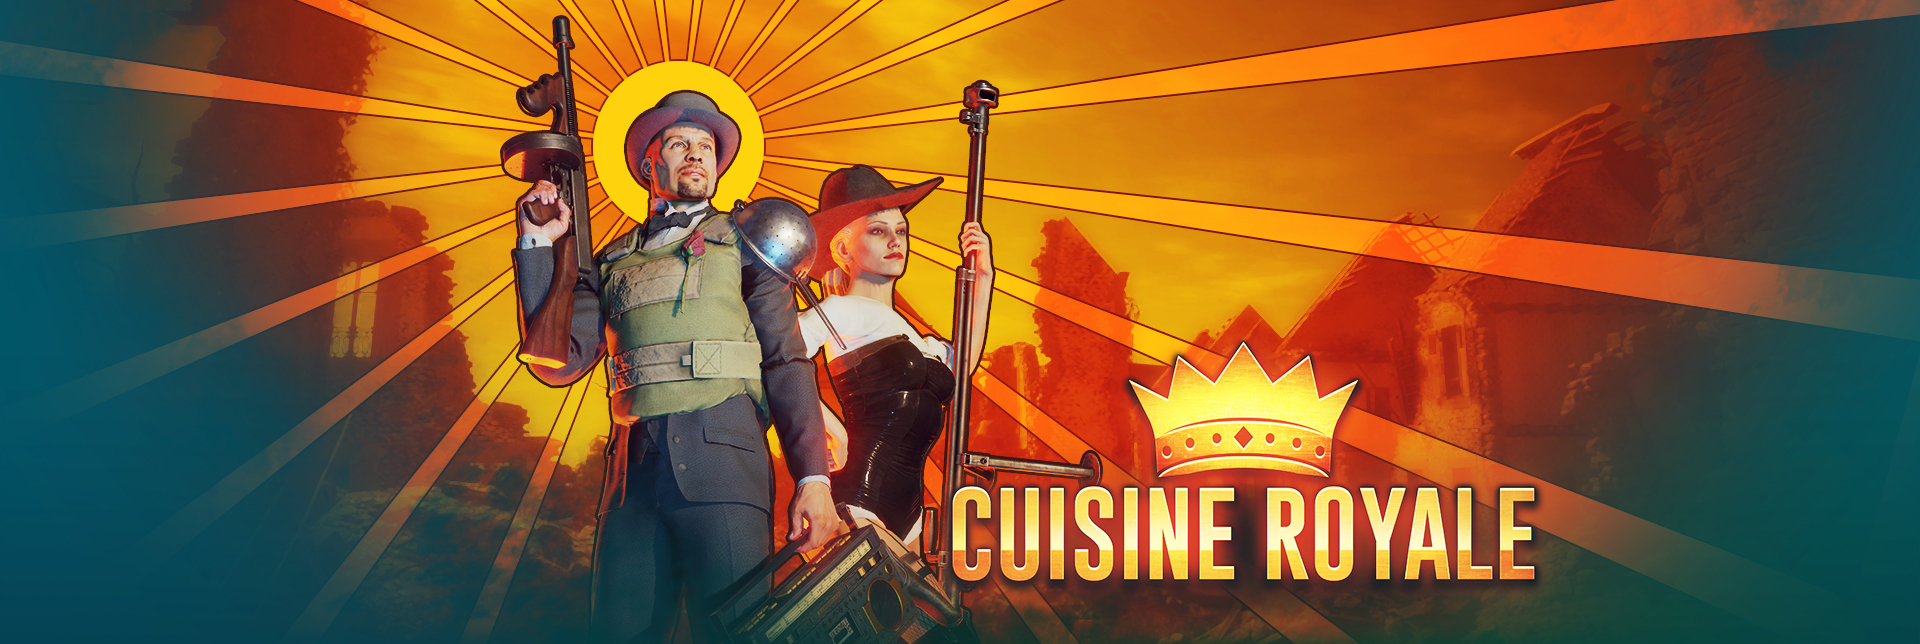 Cuisine Royale Eat Steam Community Cuisine Royale